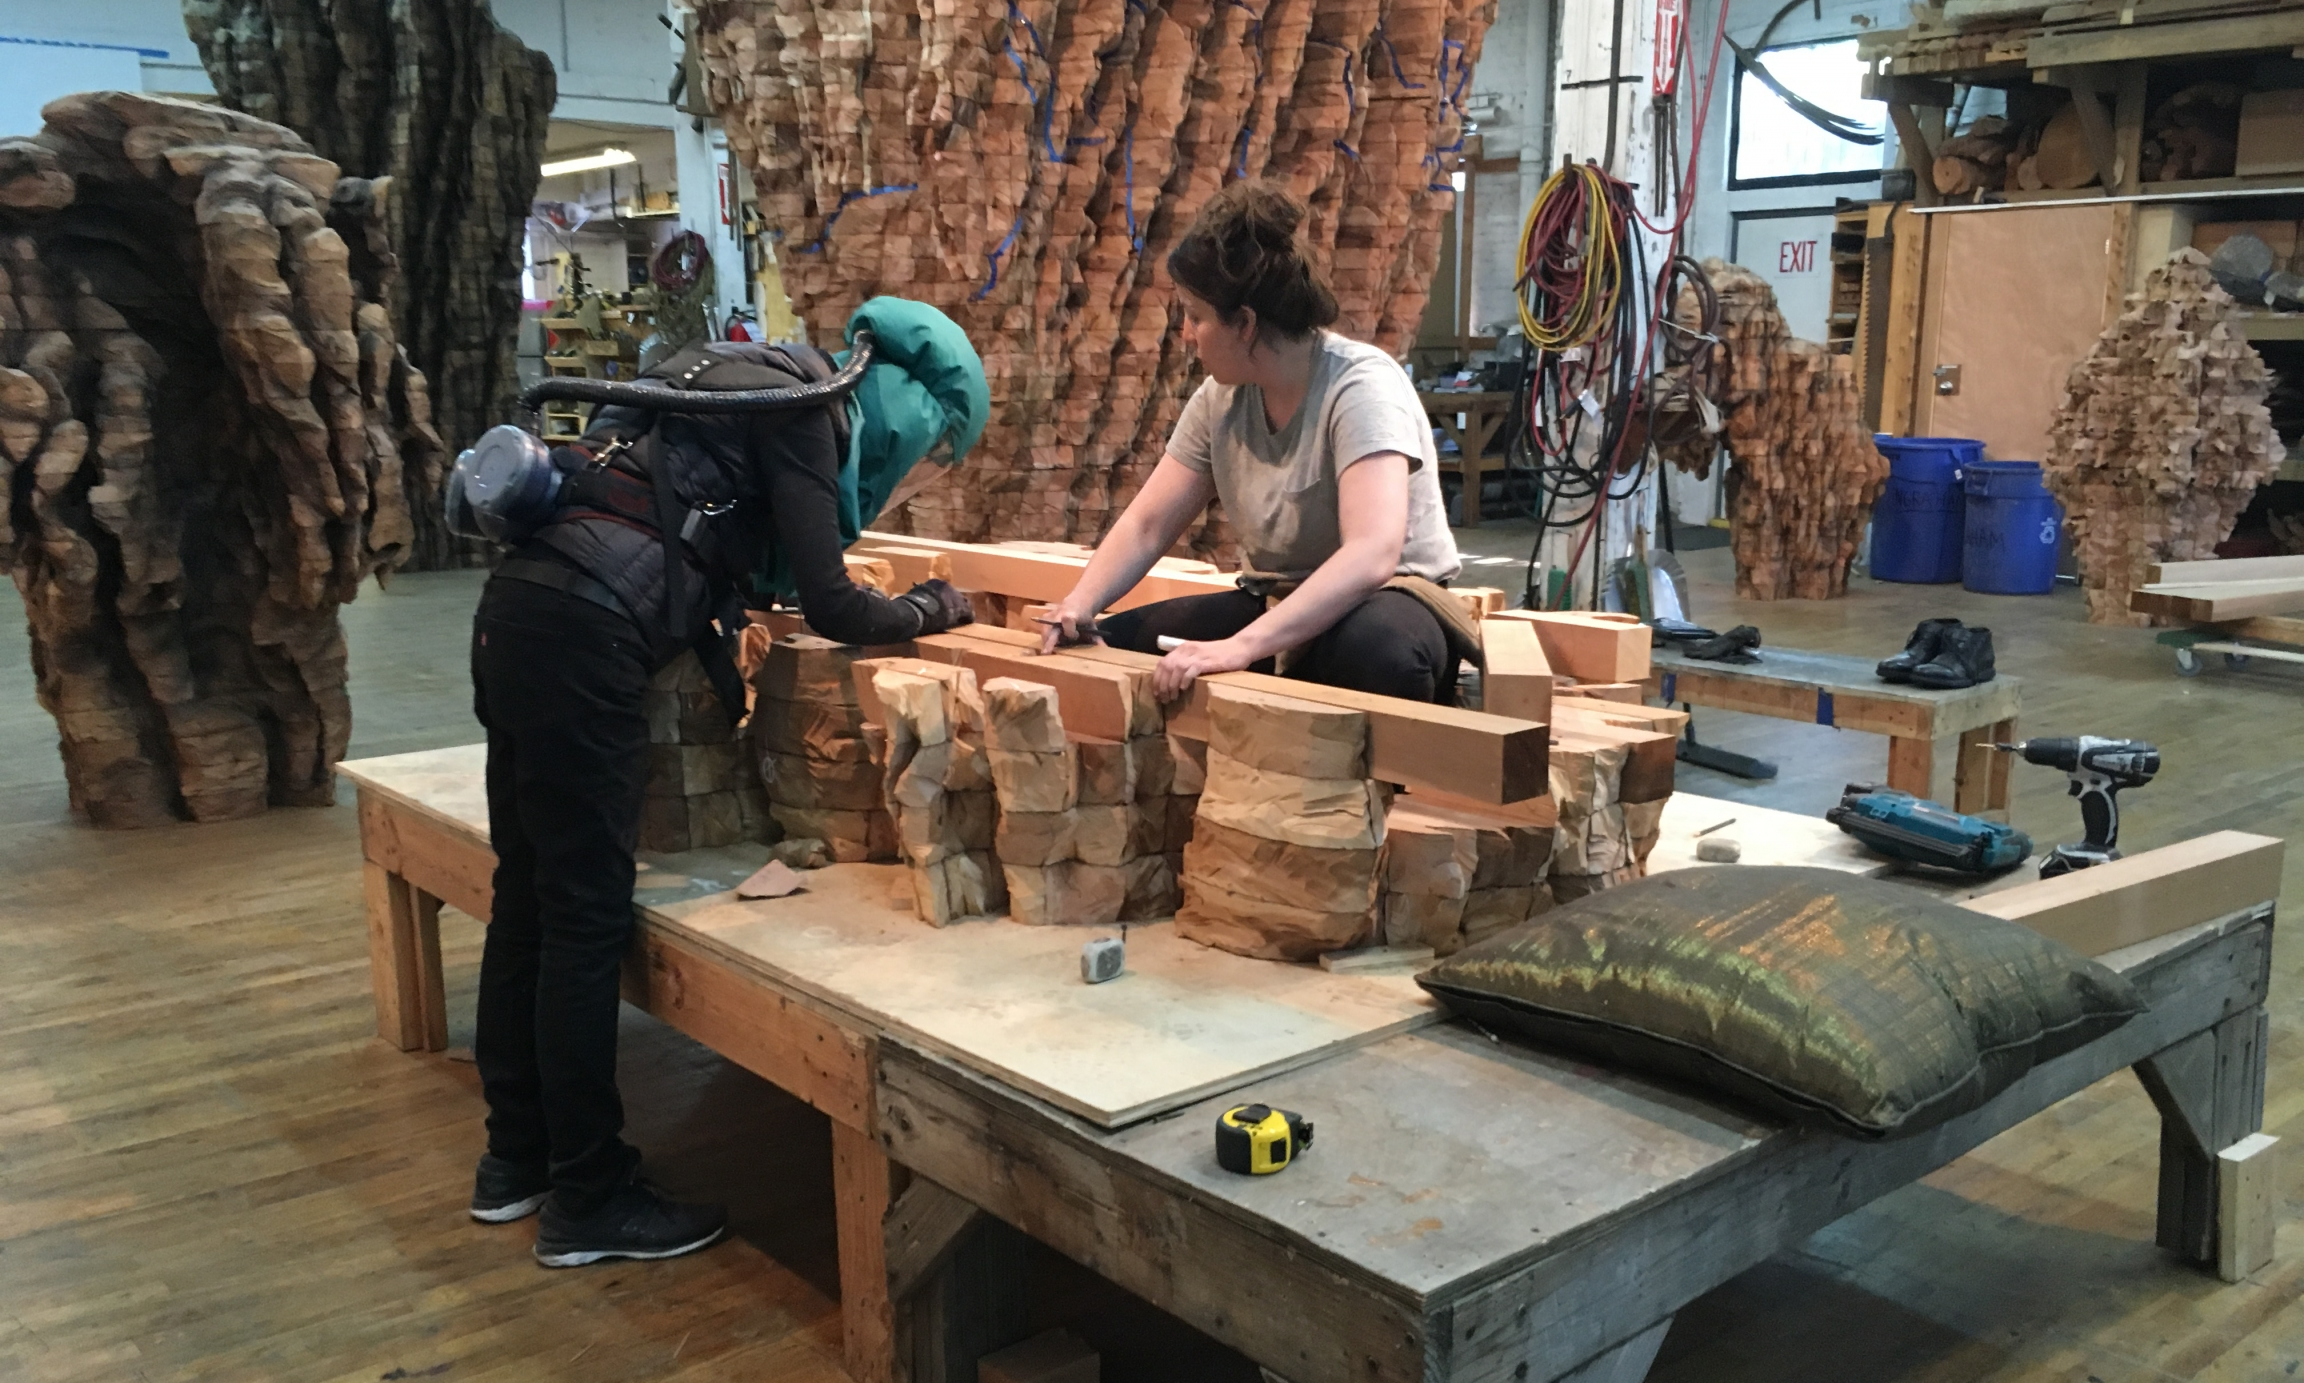 Ursula von Rydingsvard at work in her studio, with assistant Morgan Daly.